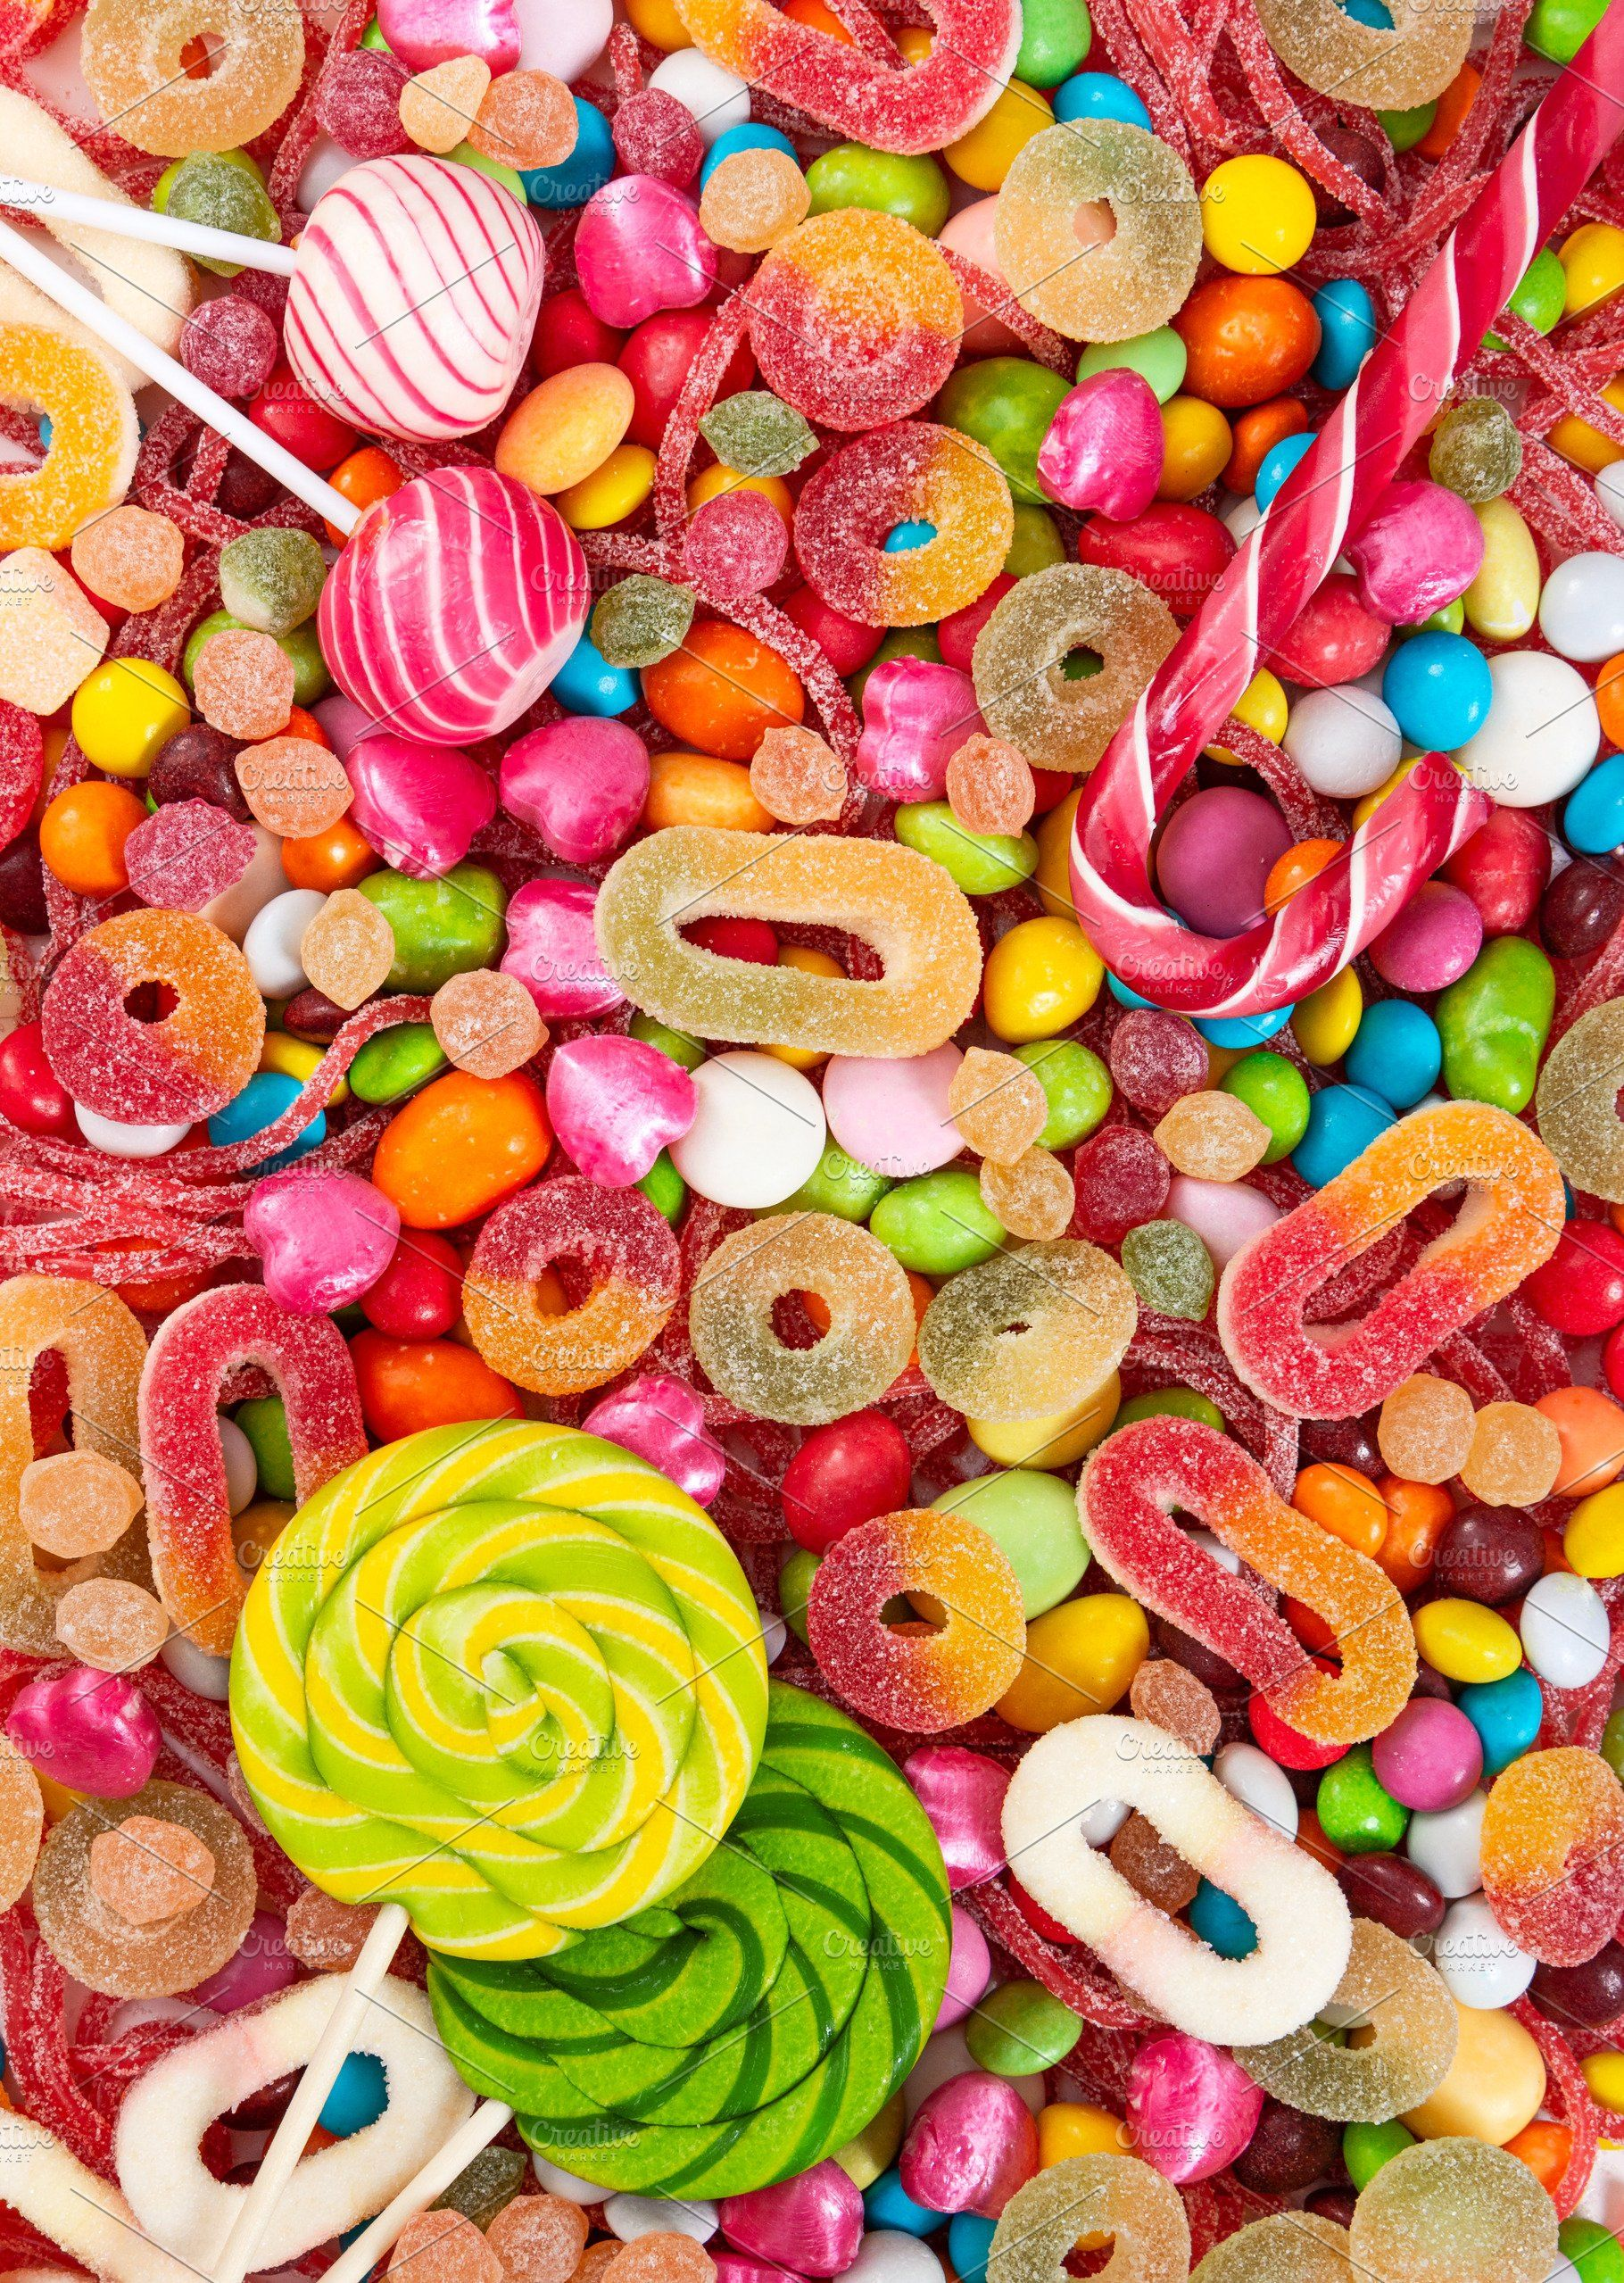 colorful lollipops and candies stock photo containing